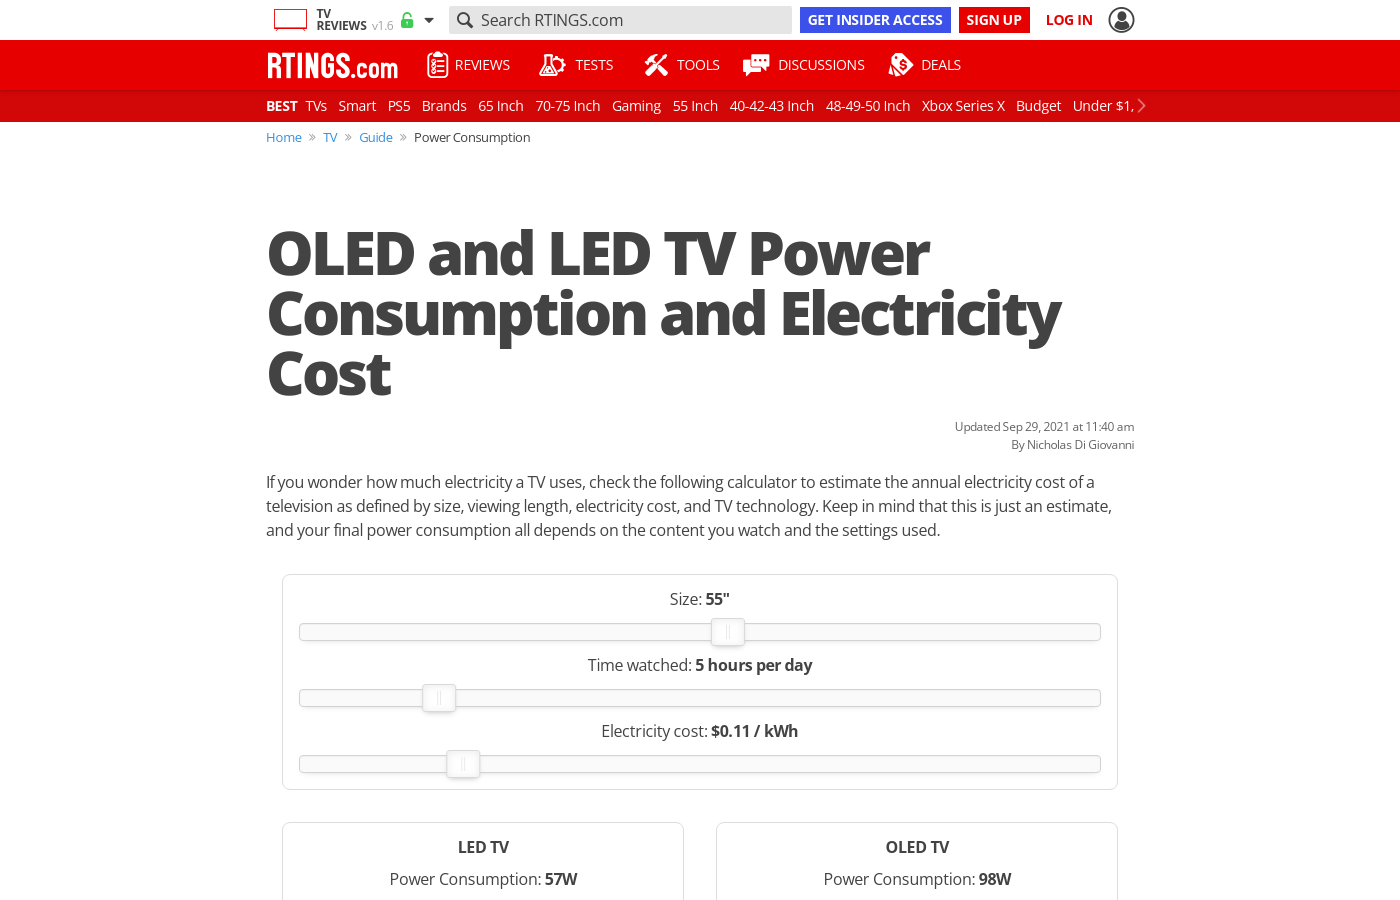 OLED and LED TV Power Consumption and Electricity Cost